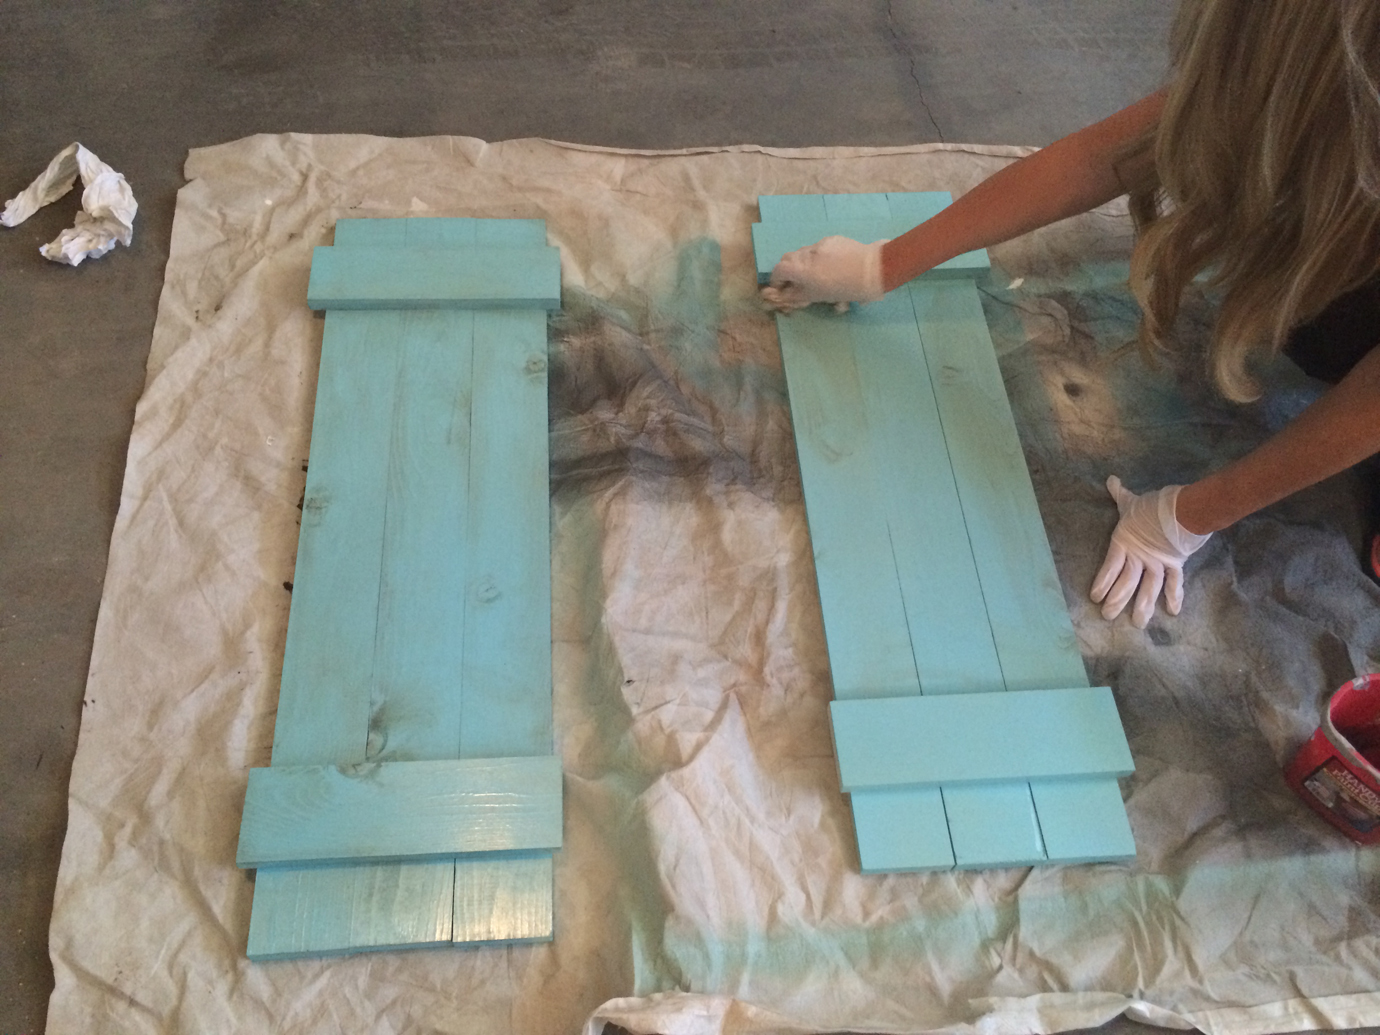 How To Paint And Stain Indoor Shutters, Aqua Lane Designs On Remodelaholic